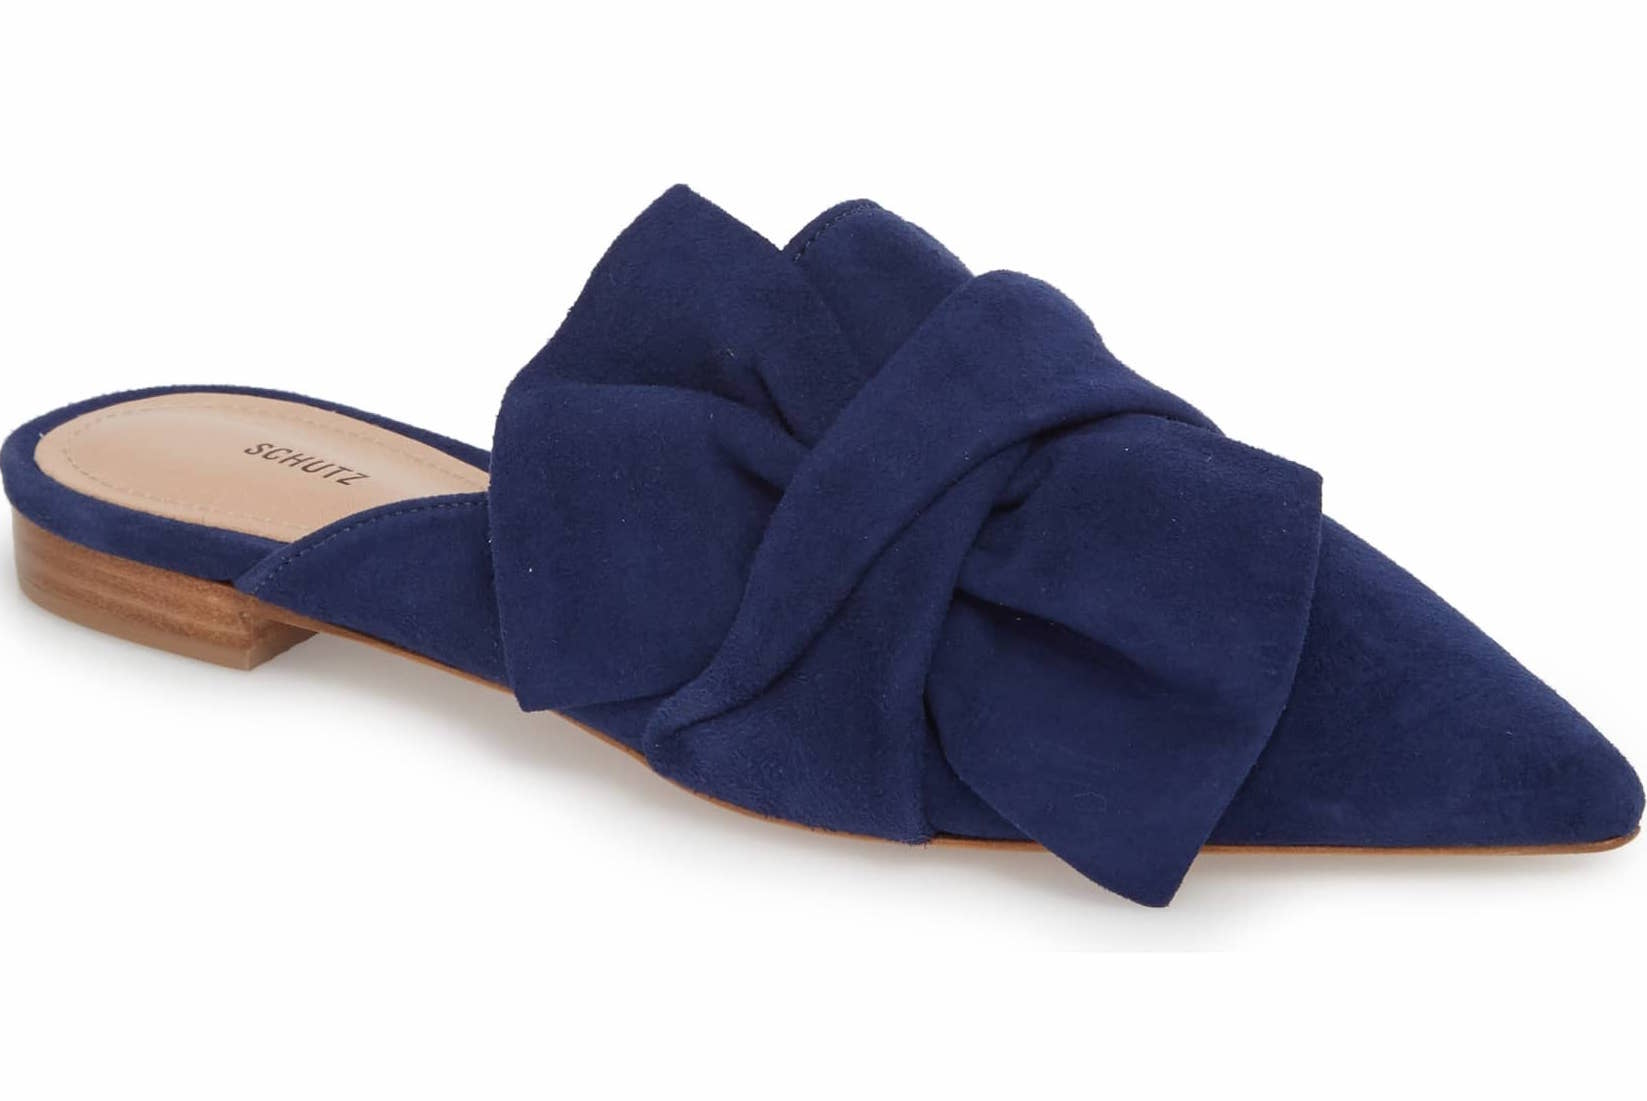 Schutz D'Ana Knotted Loafer Mule